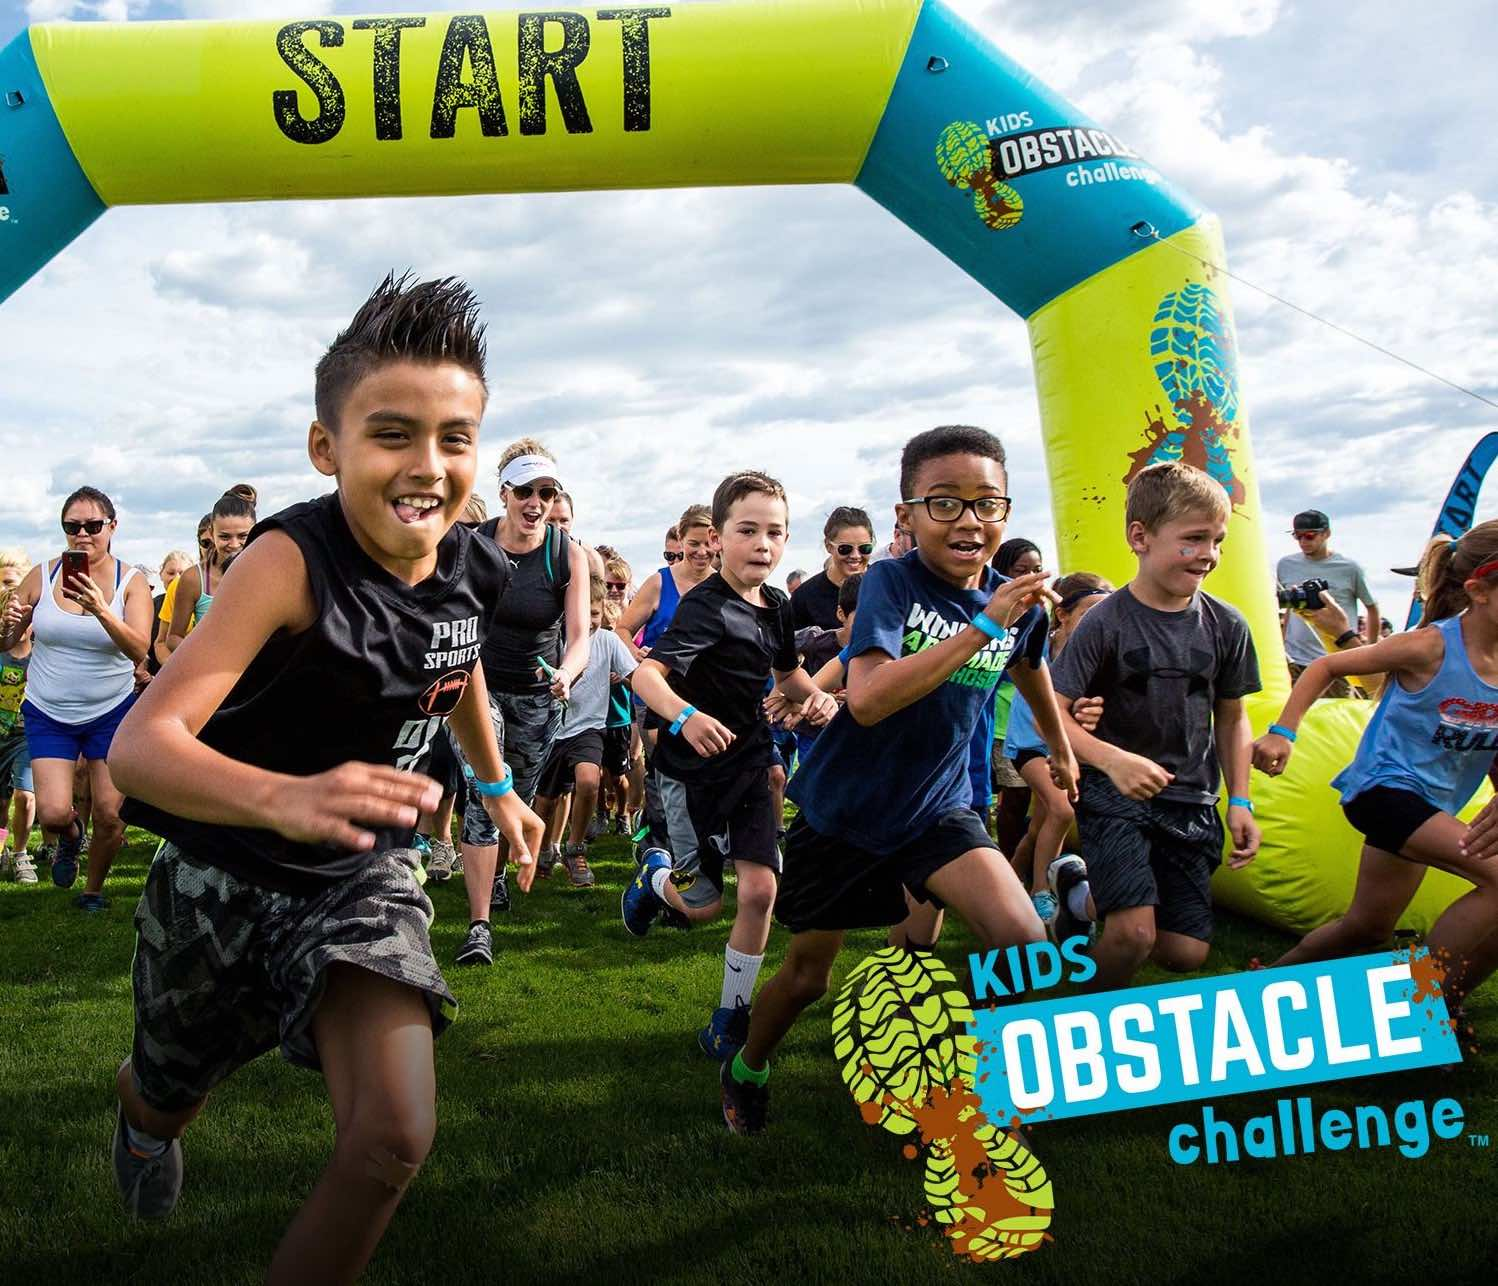 Subaru Kids Obstacle Challenge Los Angeles